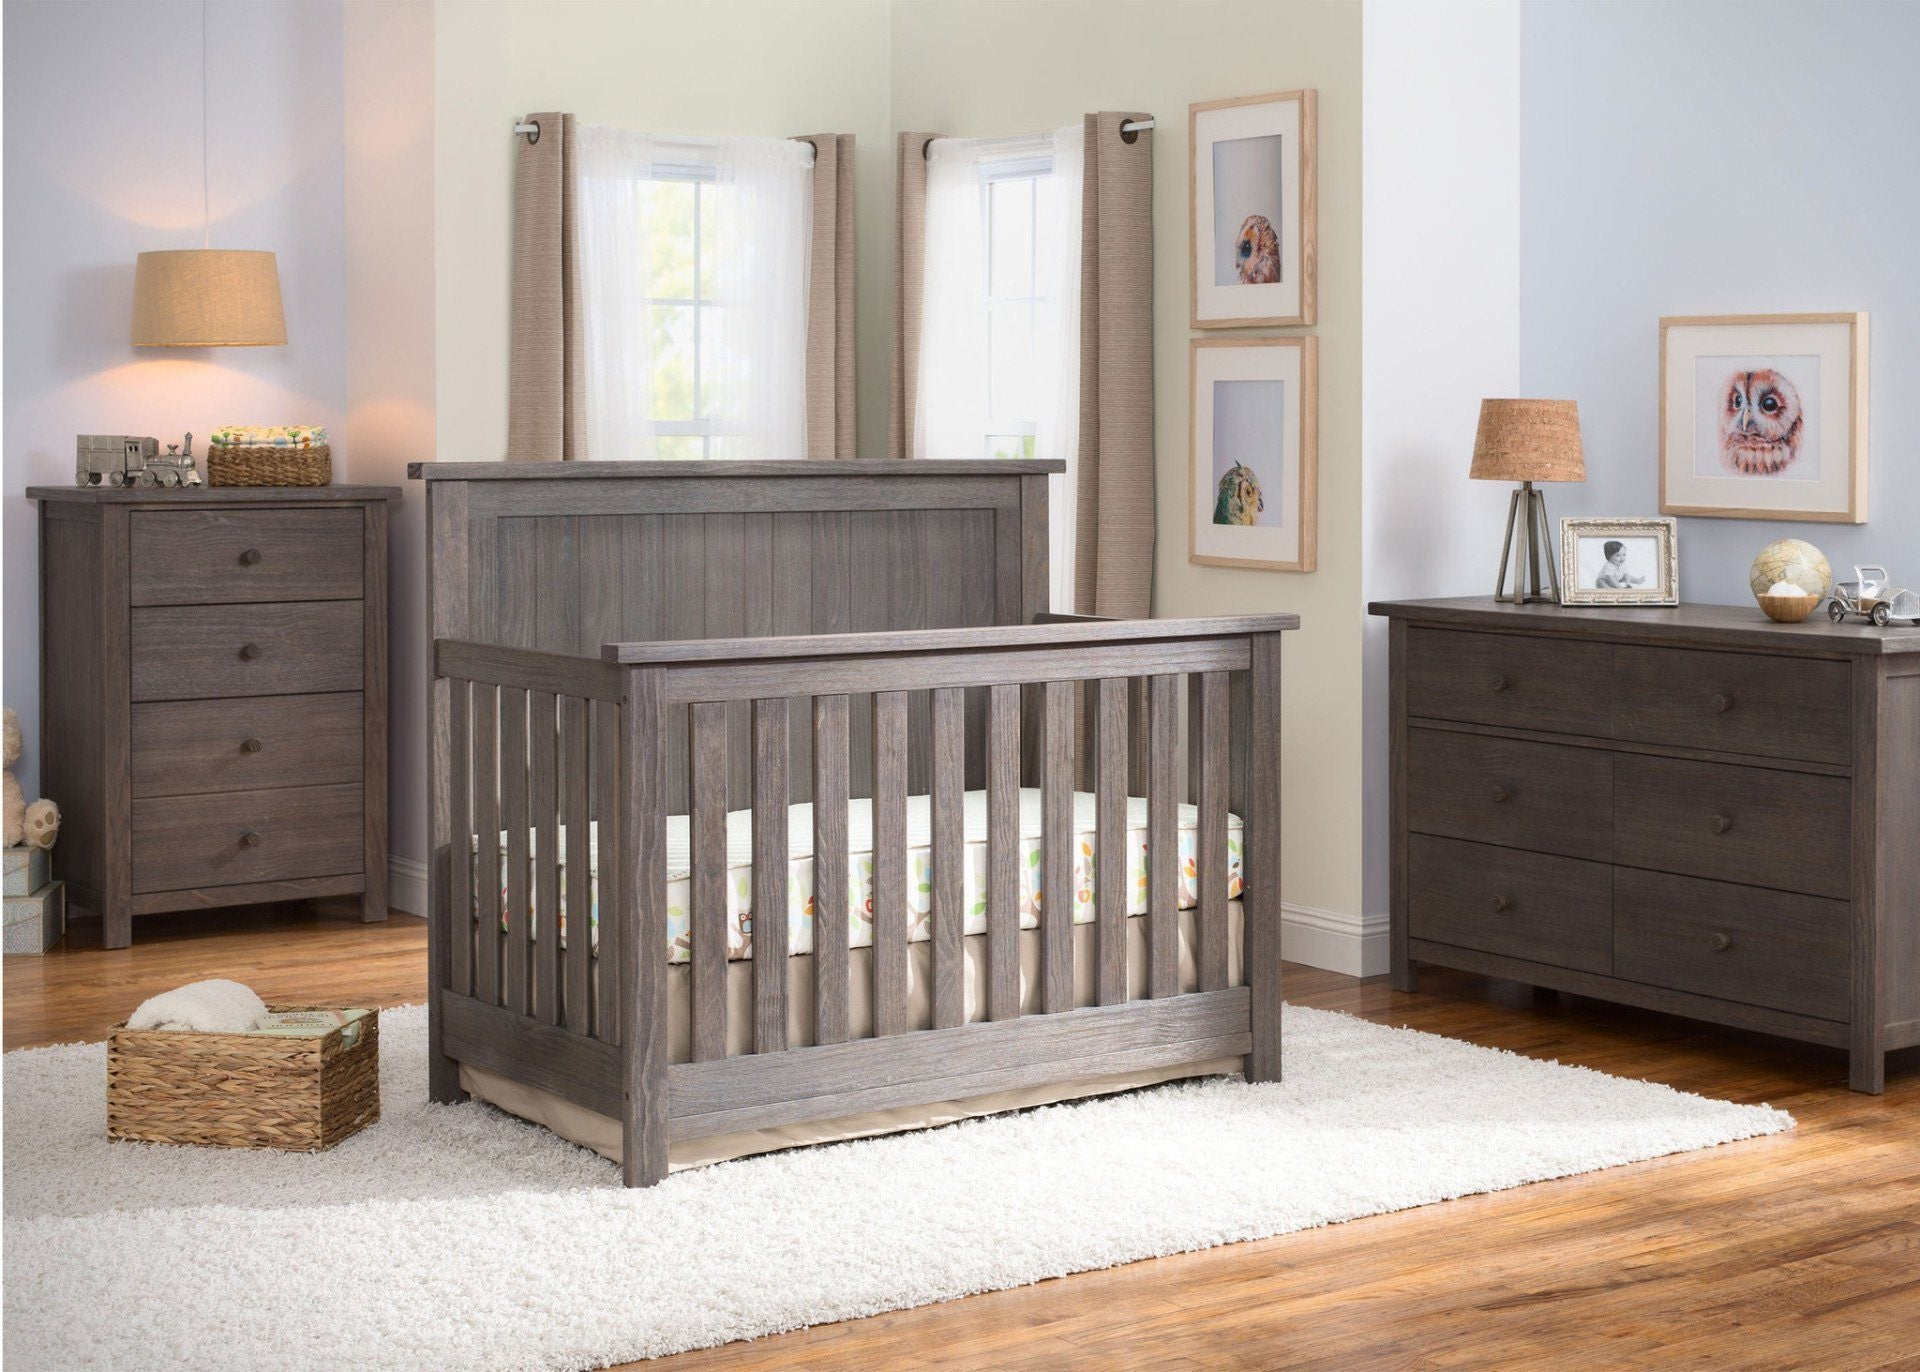 Serta Rustic Grey (084) Northbrook 4-in-1 Crib, Room View a0a